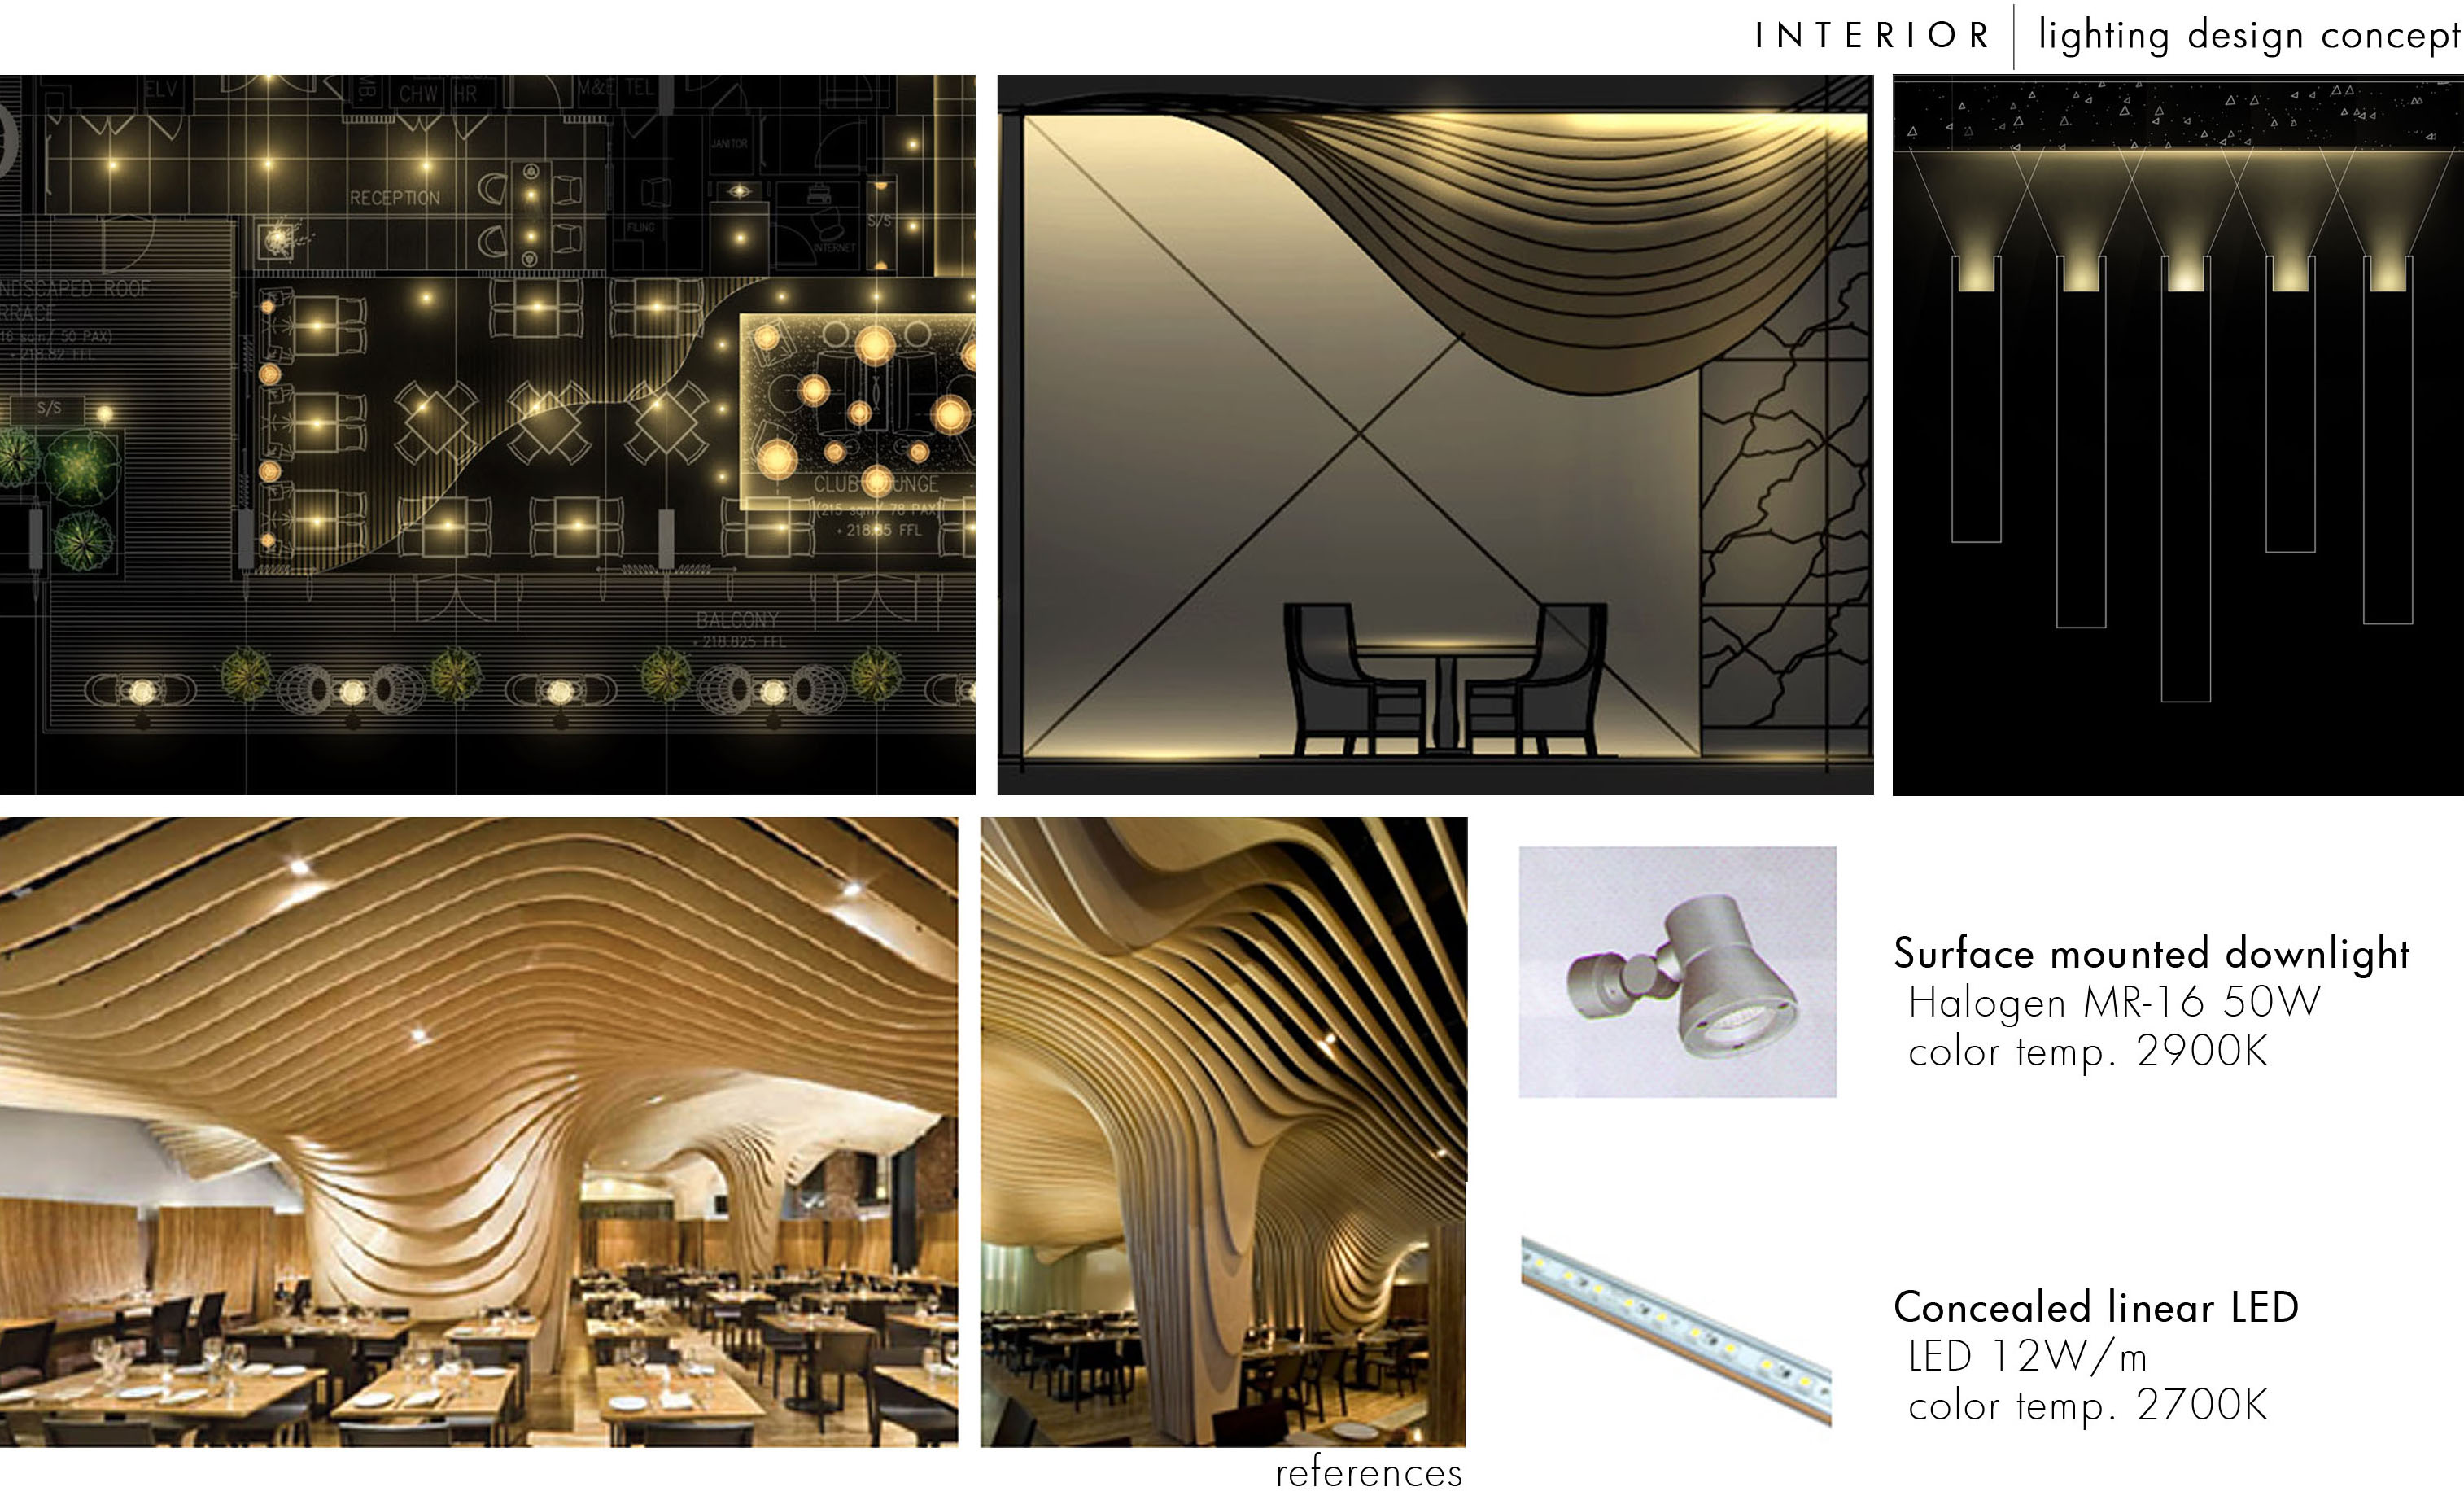 Interior Lighting Design By Steven Kurniawan At Coroflot Com